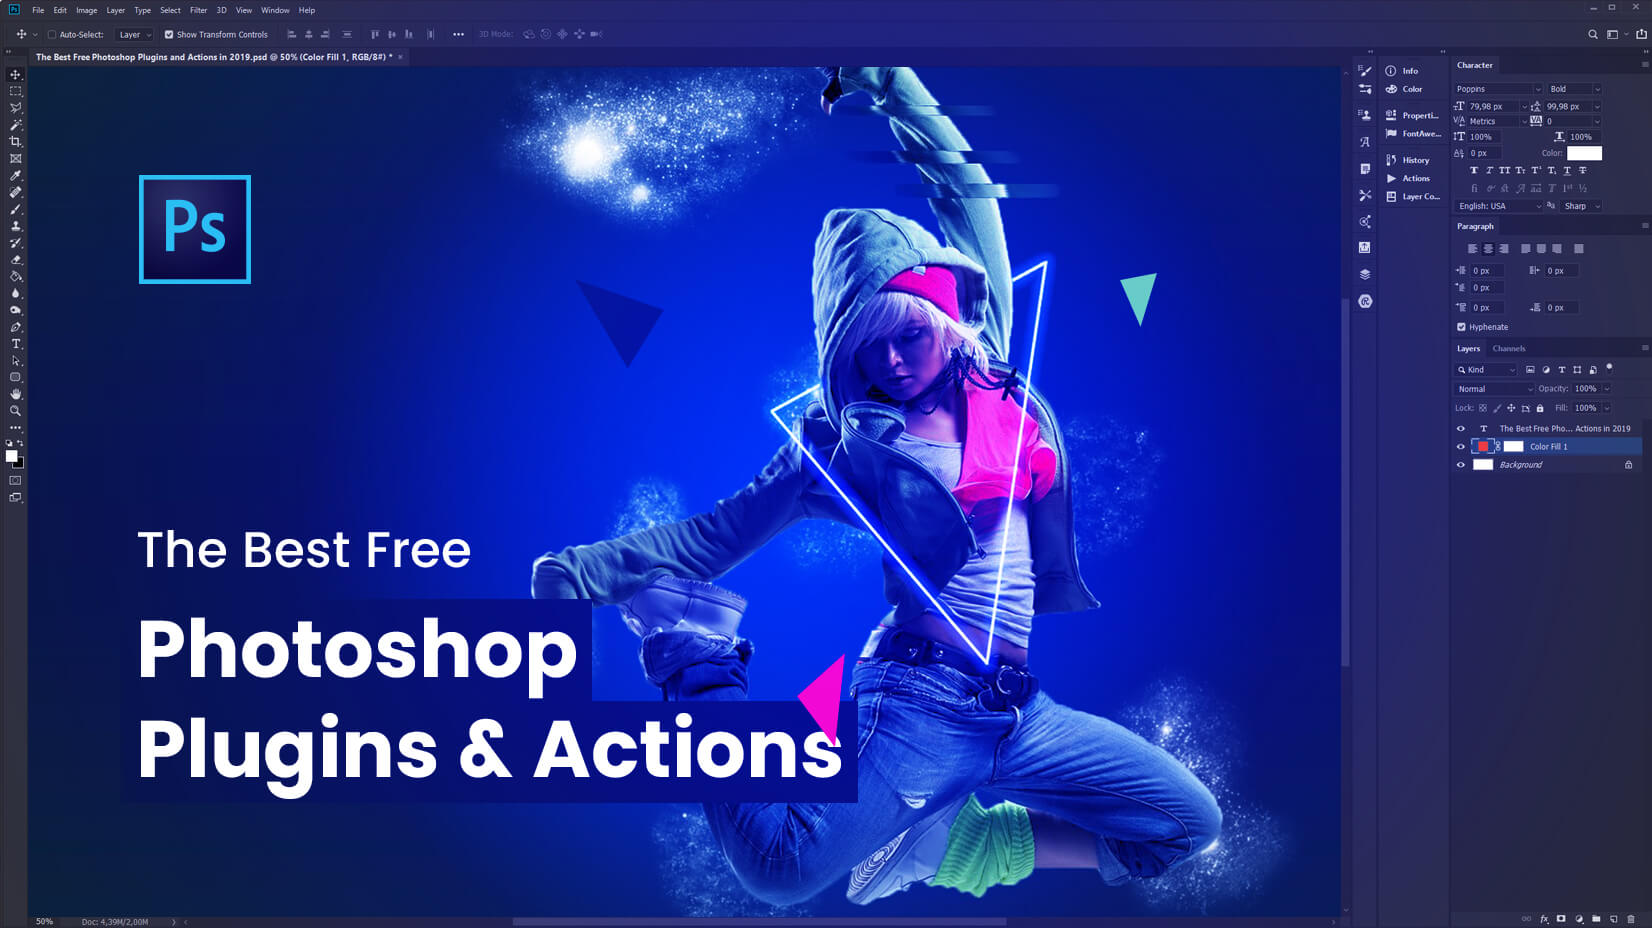 The Best Free Photoshop Plugins & Actions to Get Now.